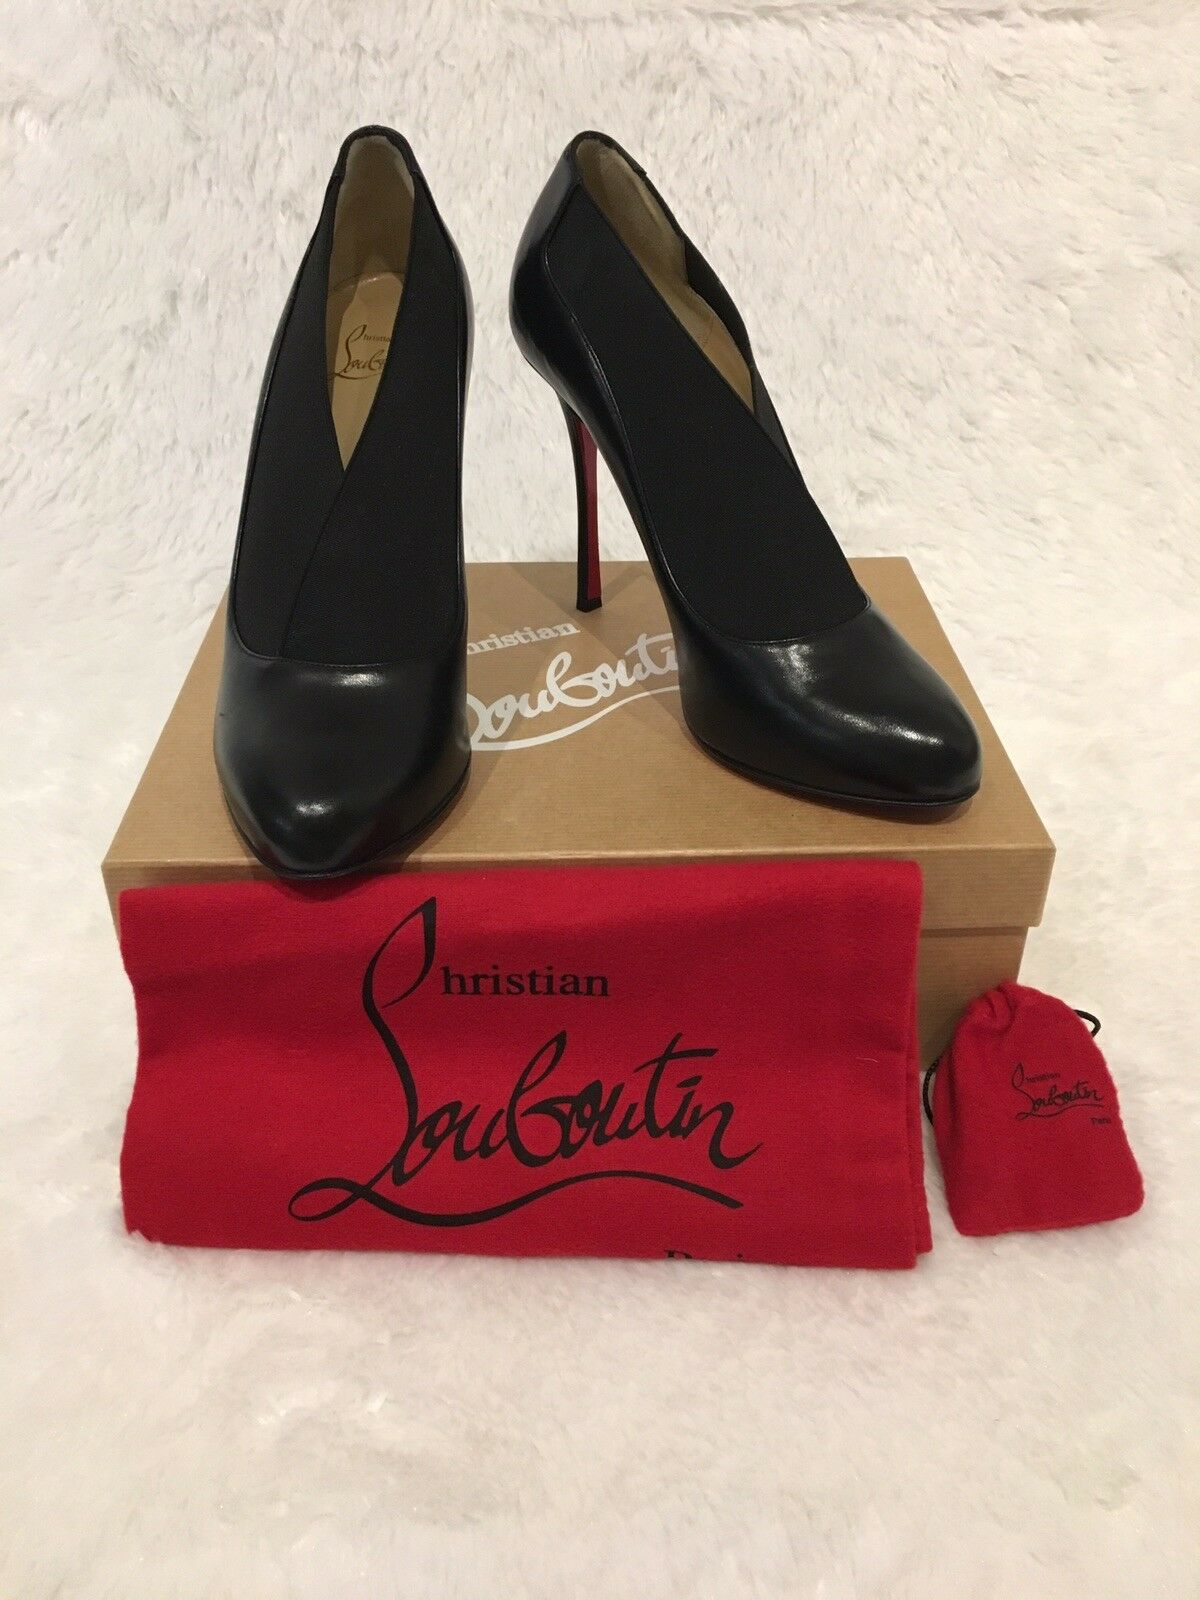 Christian Louboutin Toot Cougreene 100 Nappy Shiny 40.5 40.5 40.5  845 898375